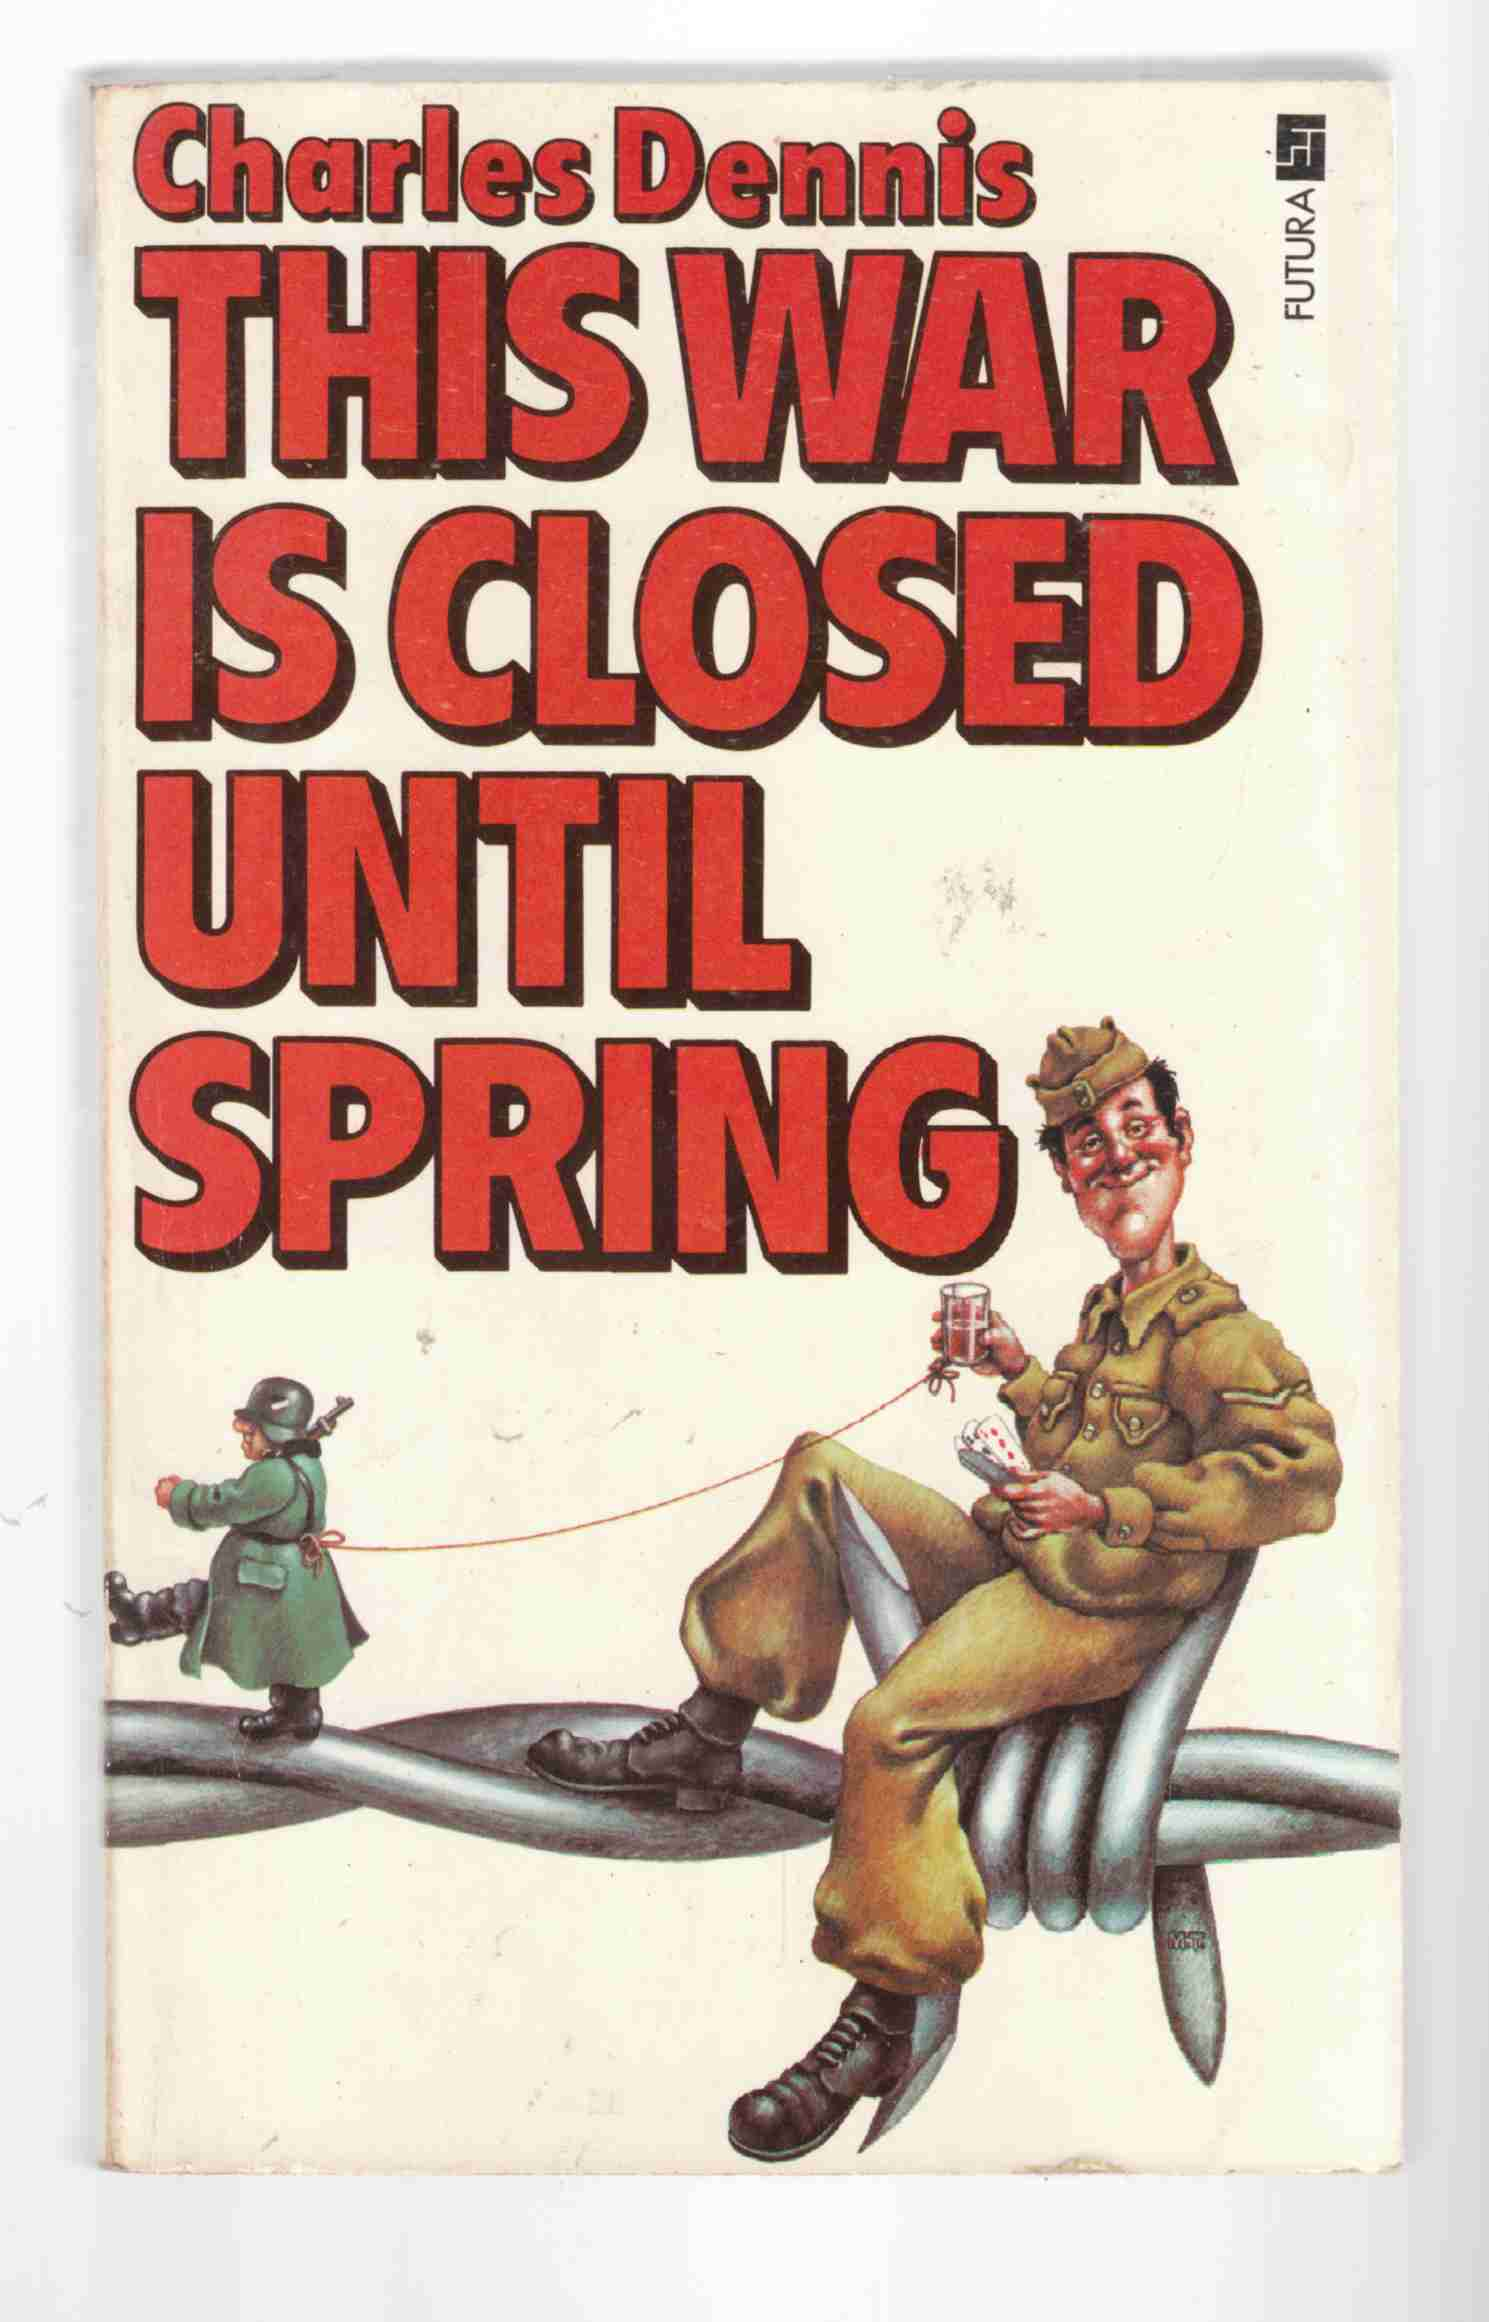 Image for This War Closed Until Spring